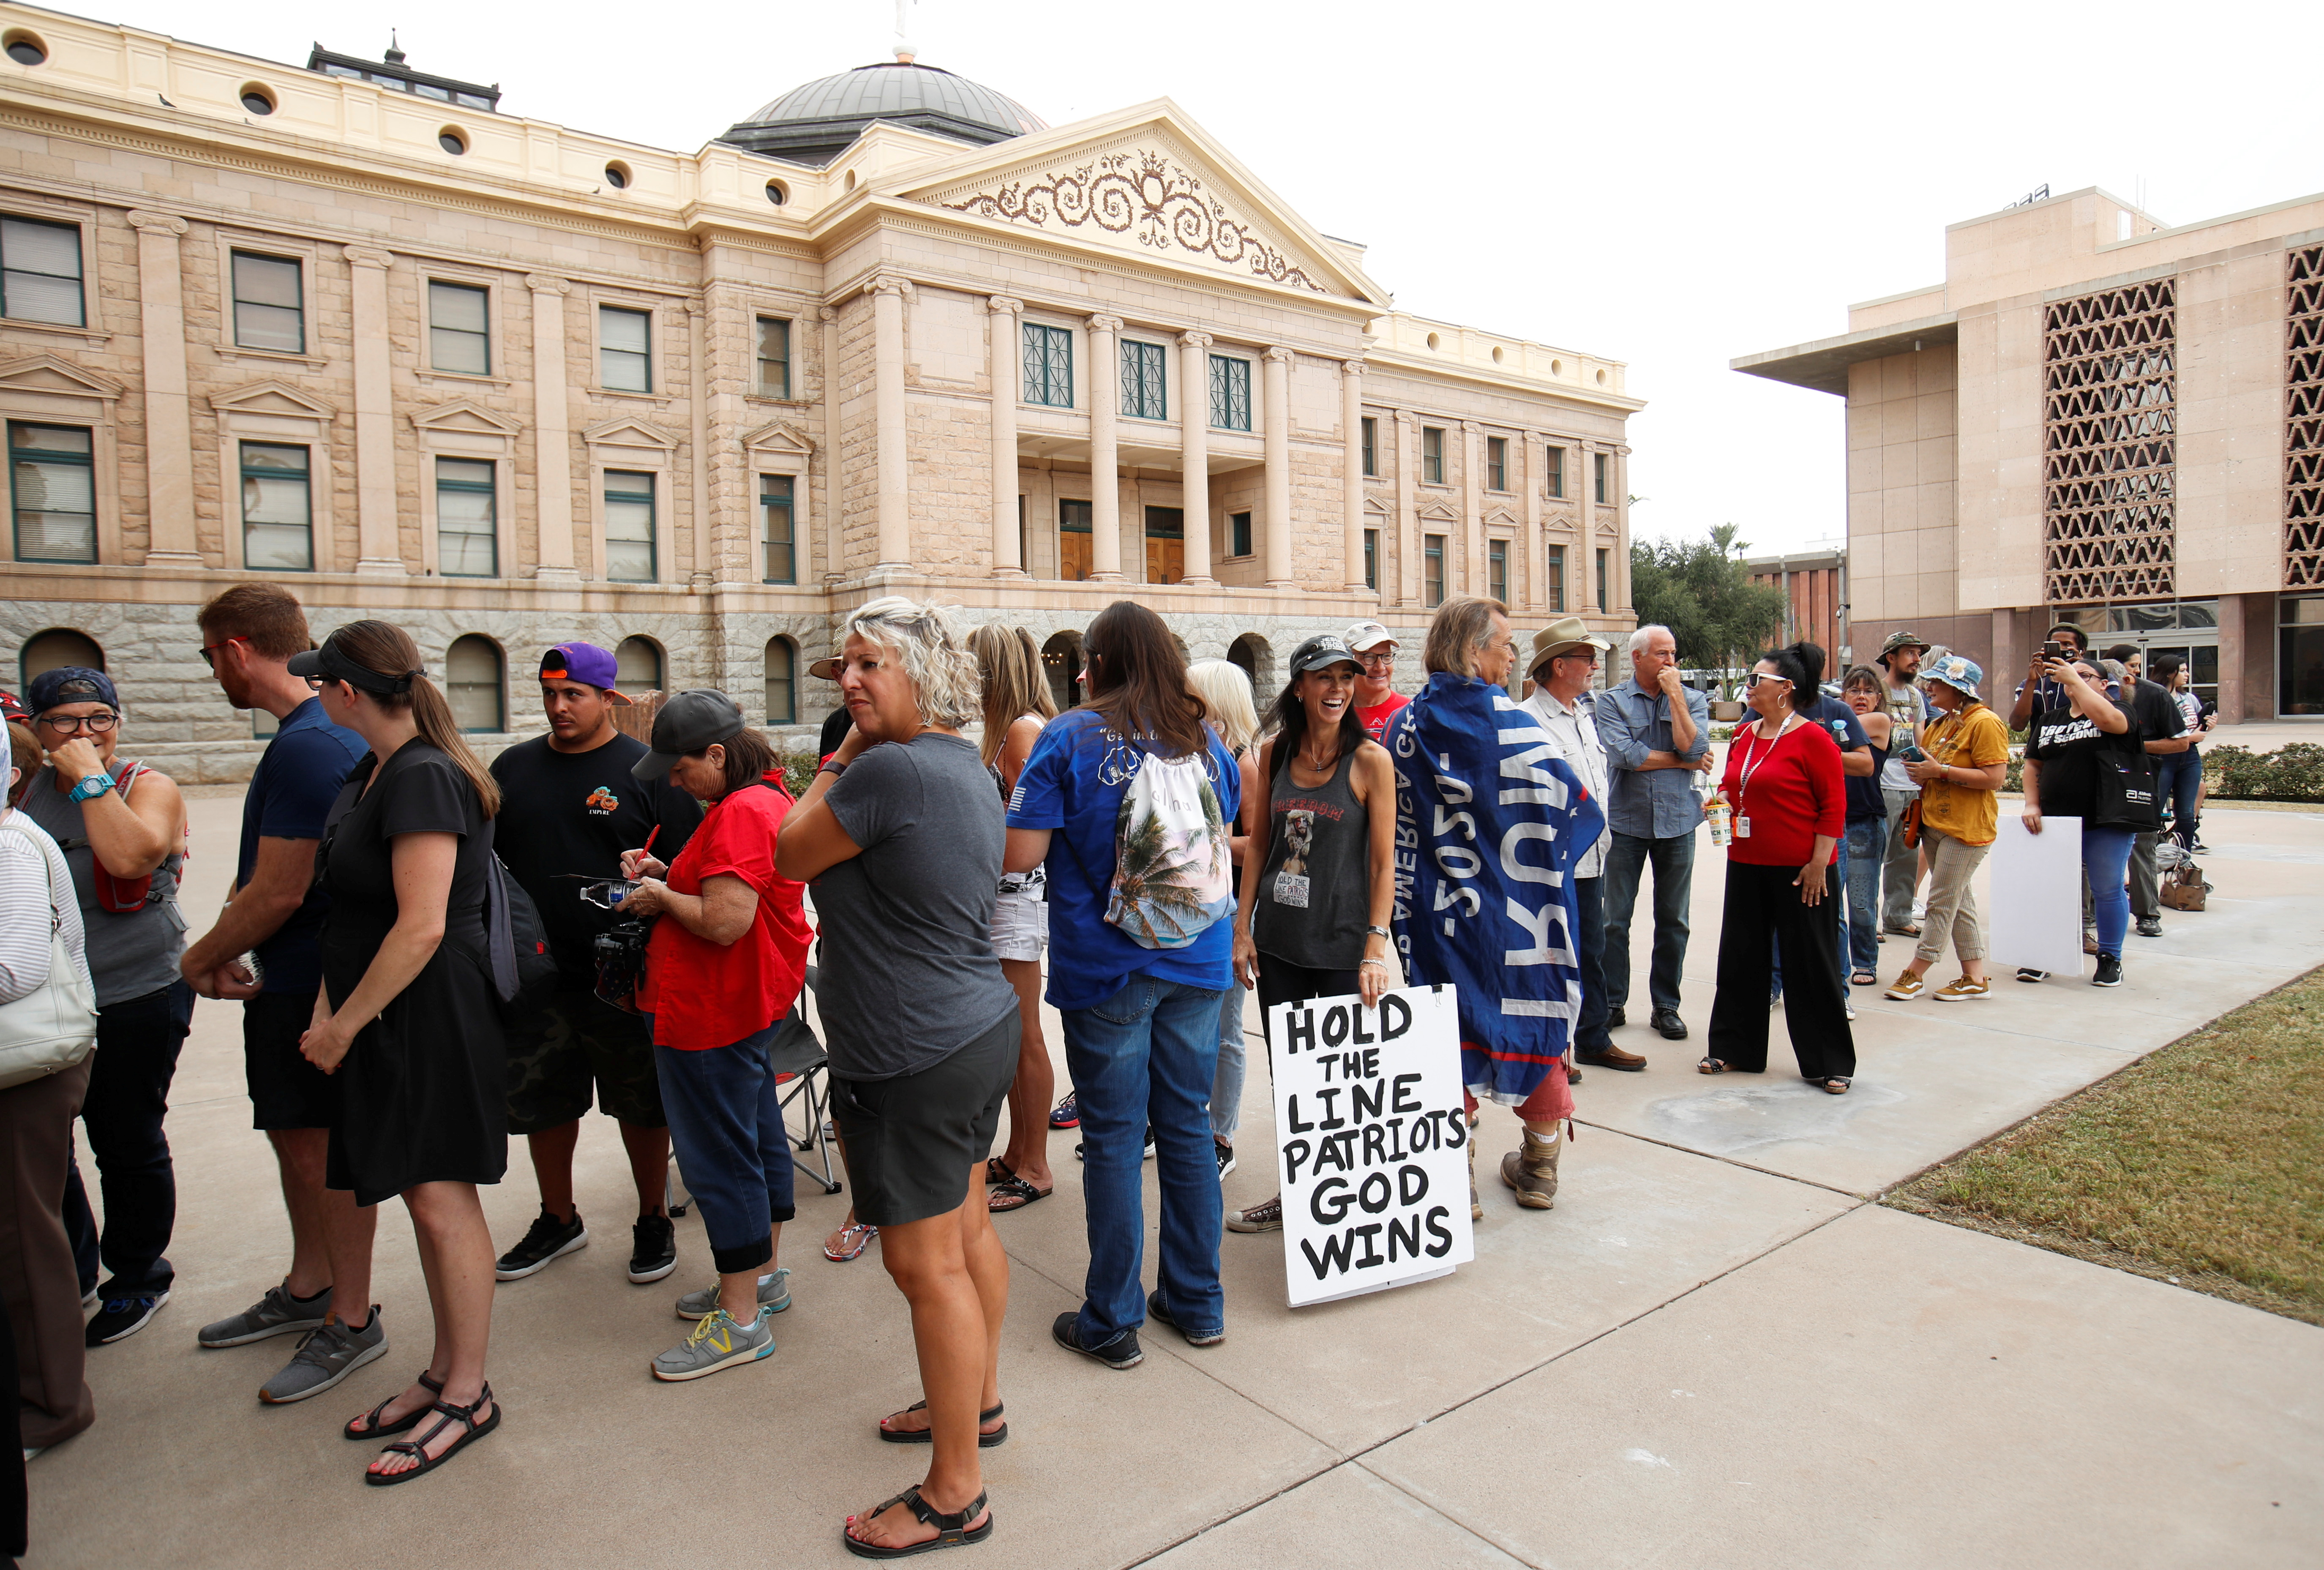 People line up to get into the Senate chambers for the announcement of interim findings from a widely criticized audit of the 2020 election in Phoenix, Arizona, September 24, 2021.  REUTERS/Mike Blake